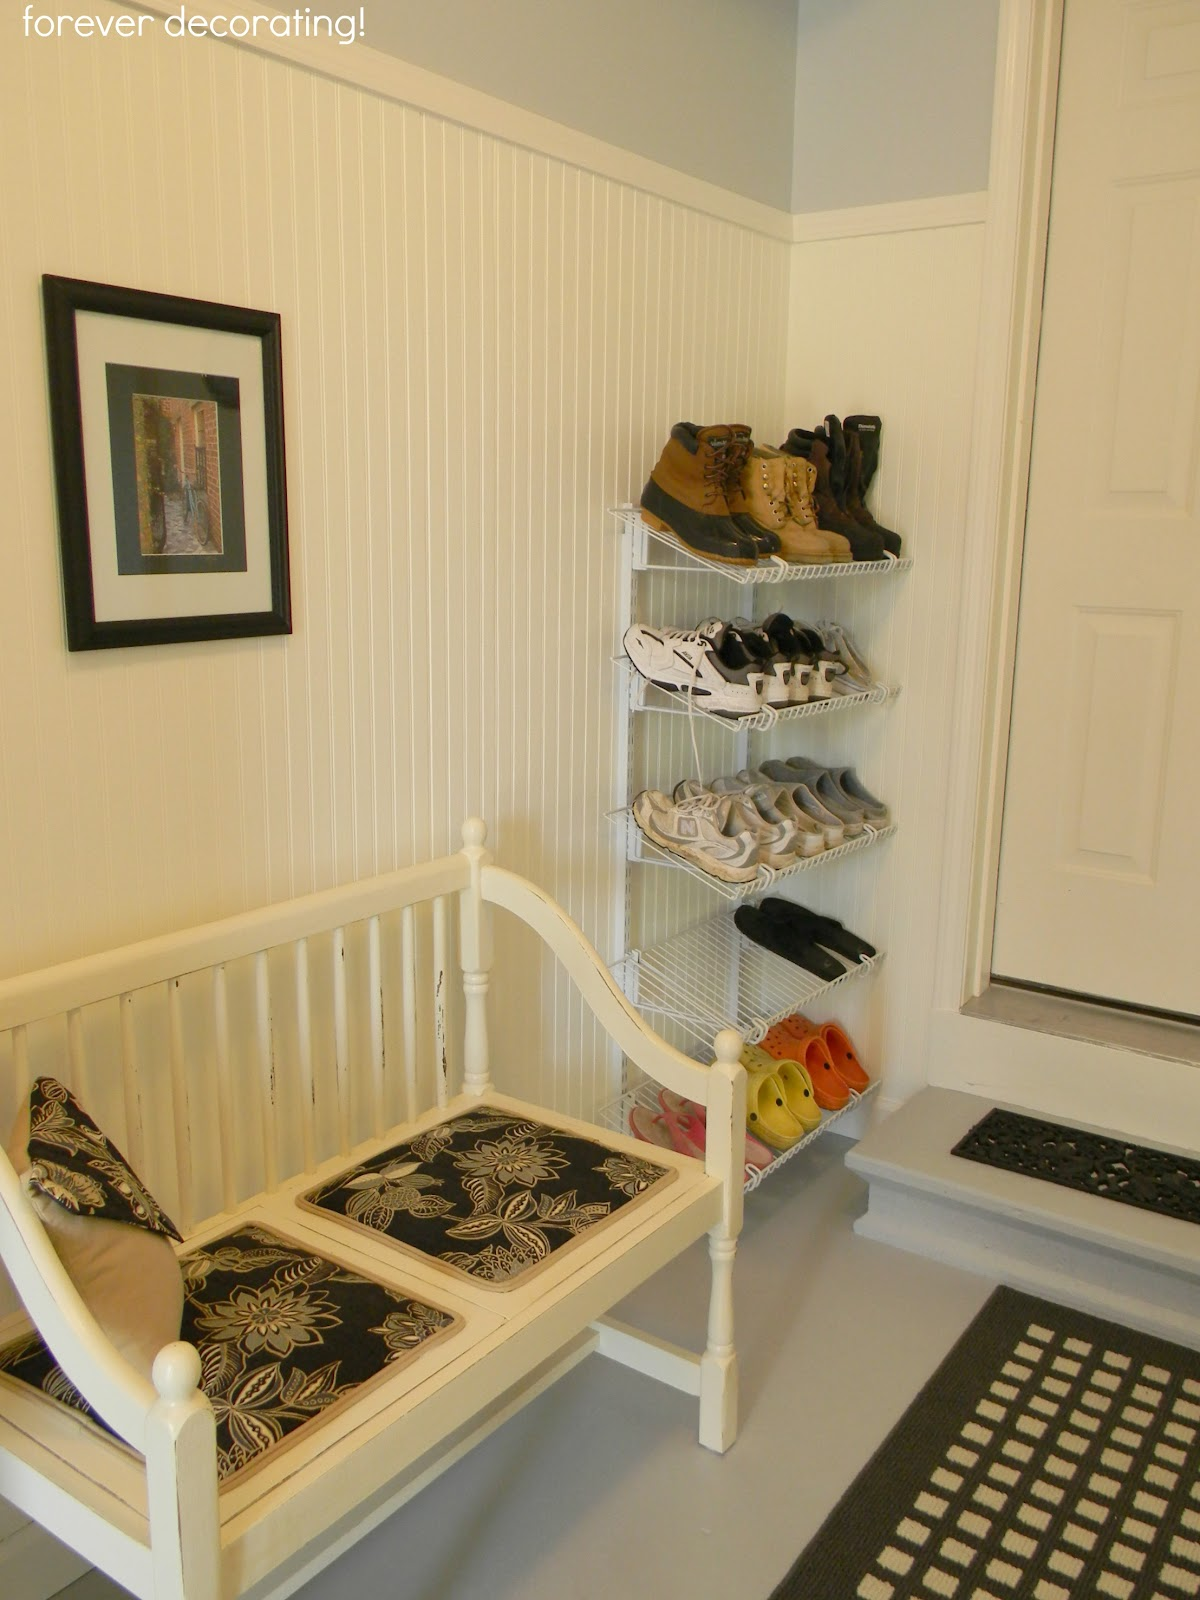 Mudroom Decorating Ideas And Pictures - Elitflat